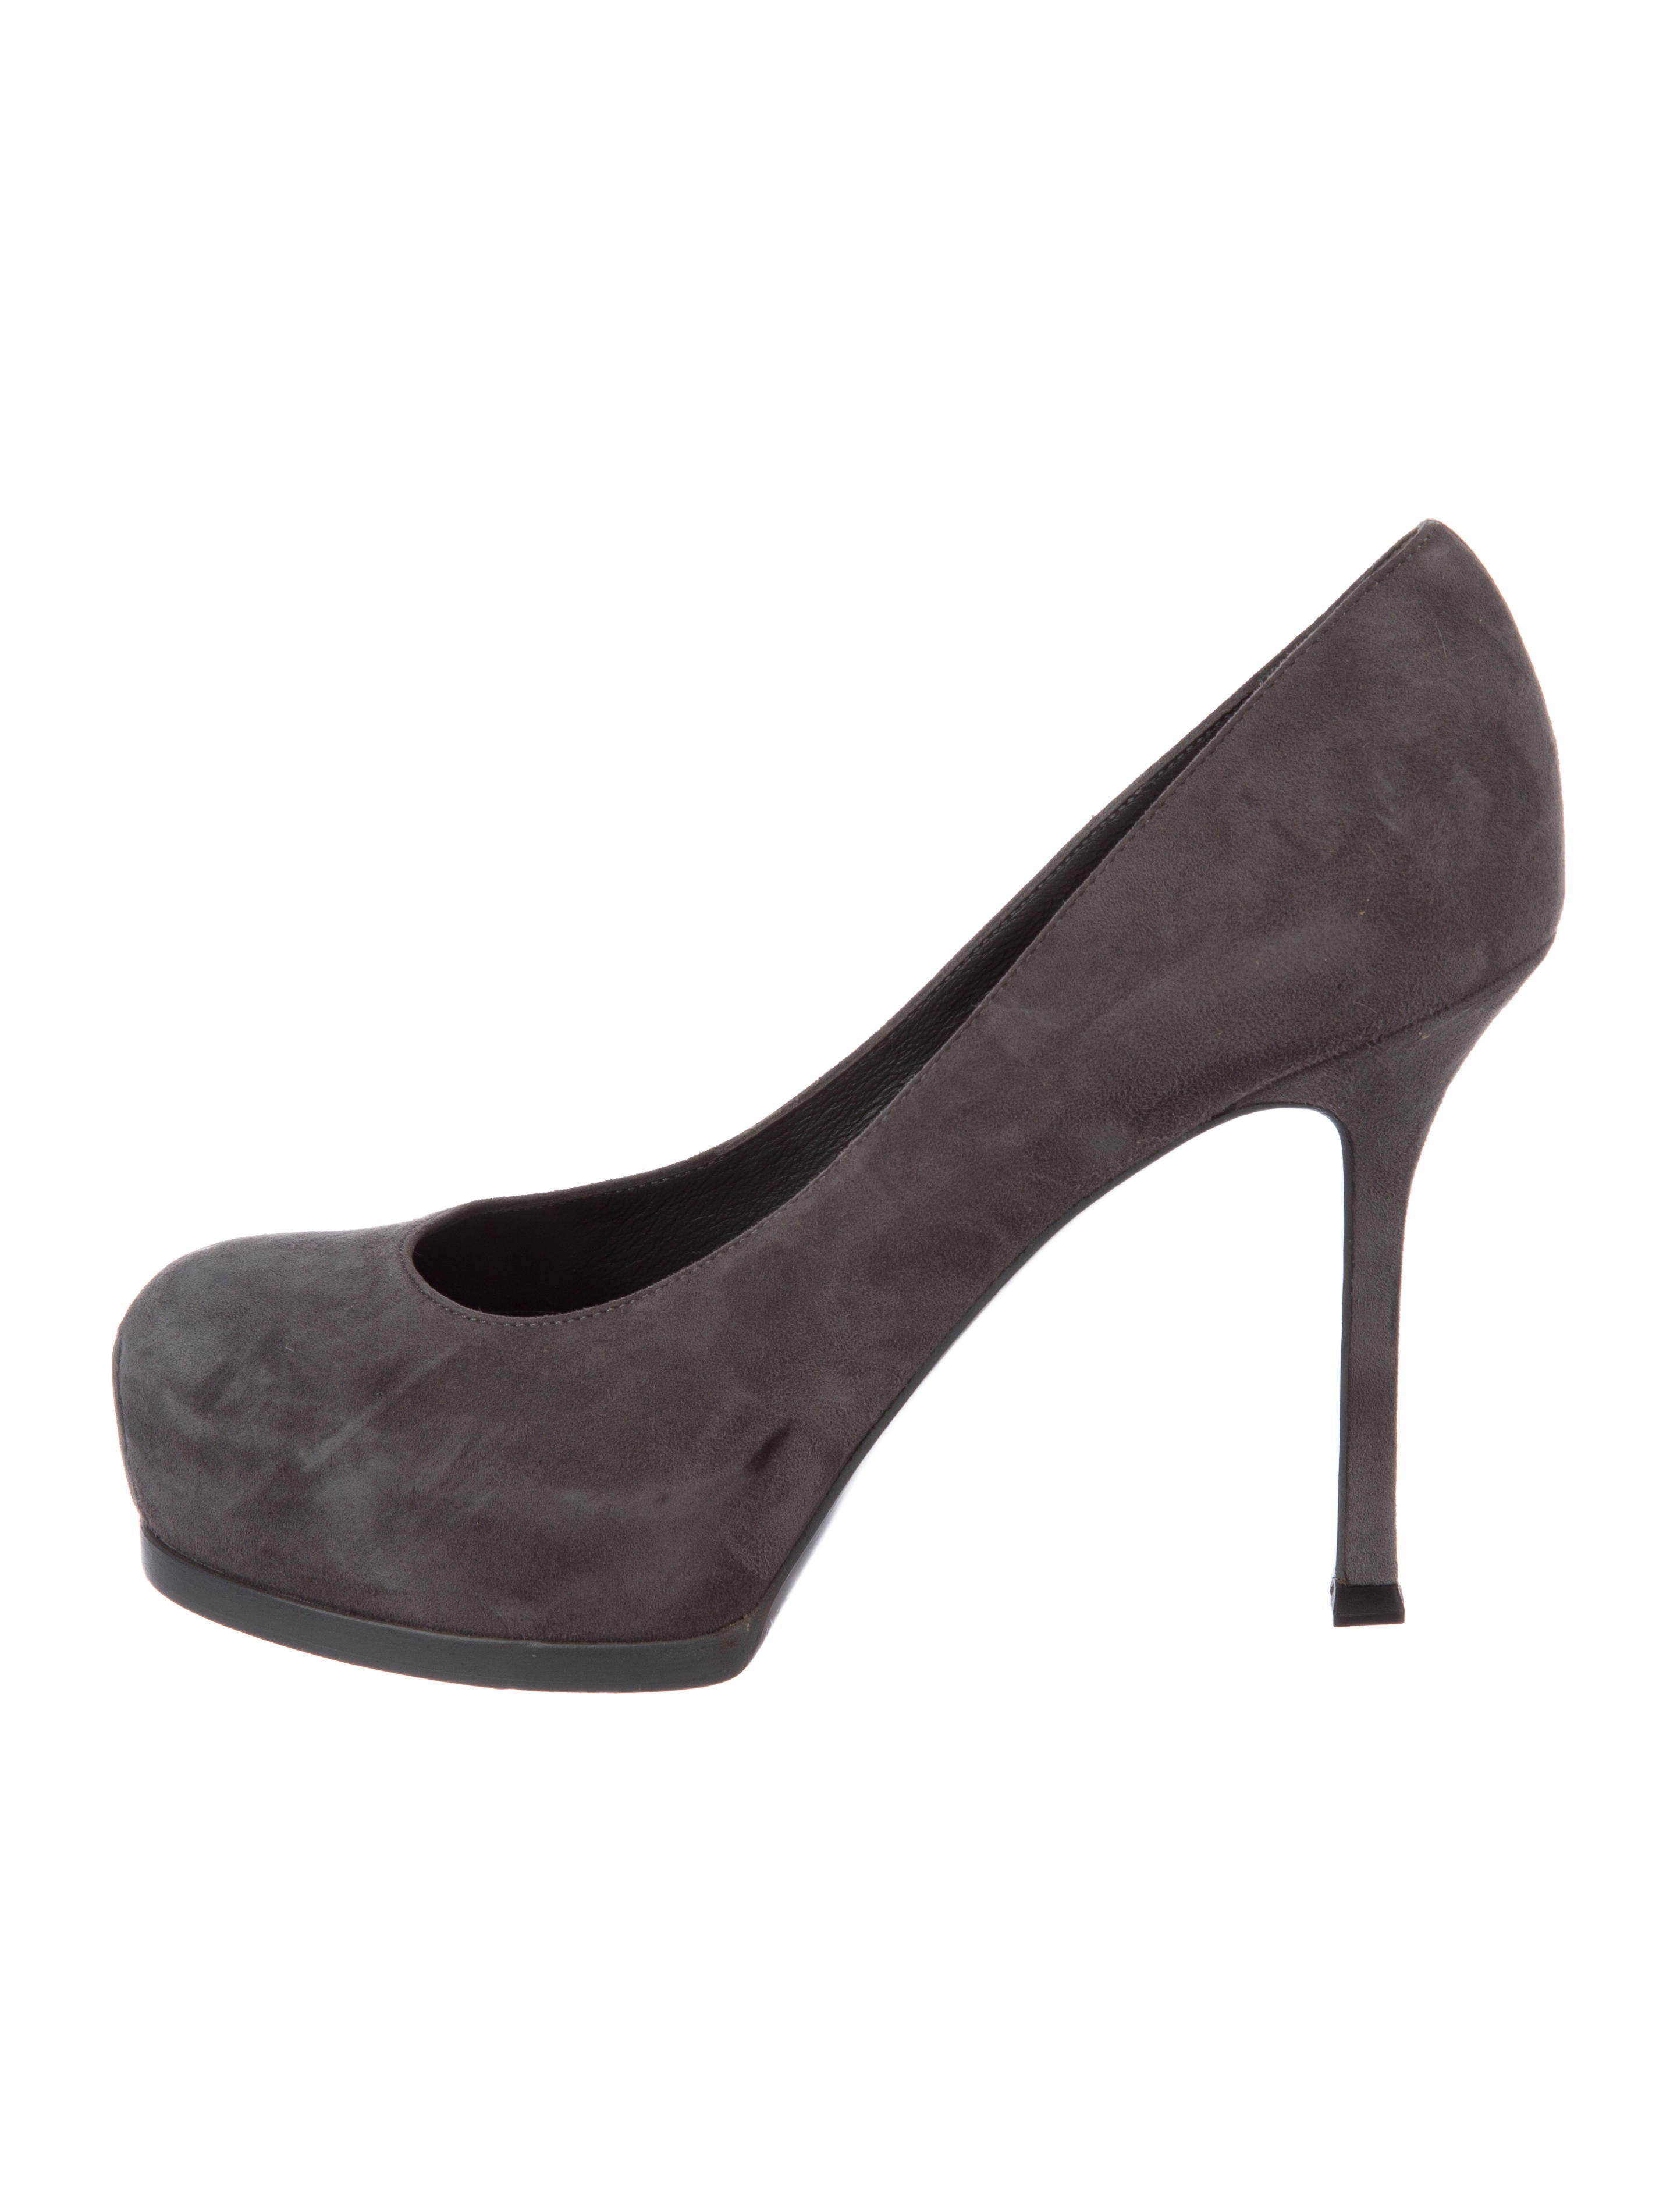 a5ffce07ae53 Yves Saint Laurent Tribute Two Suede Pumps. Tribute Two Suede Pumps ...